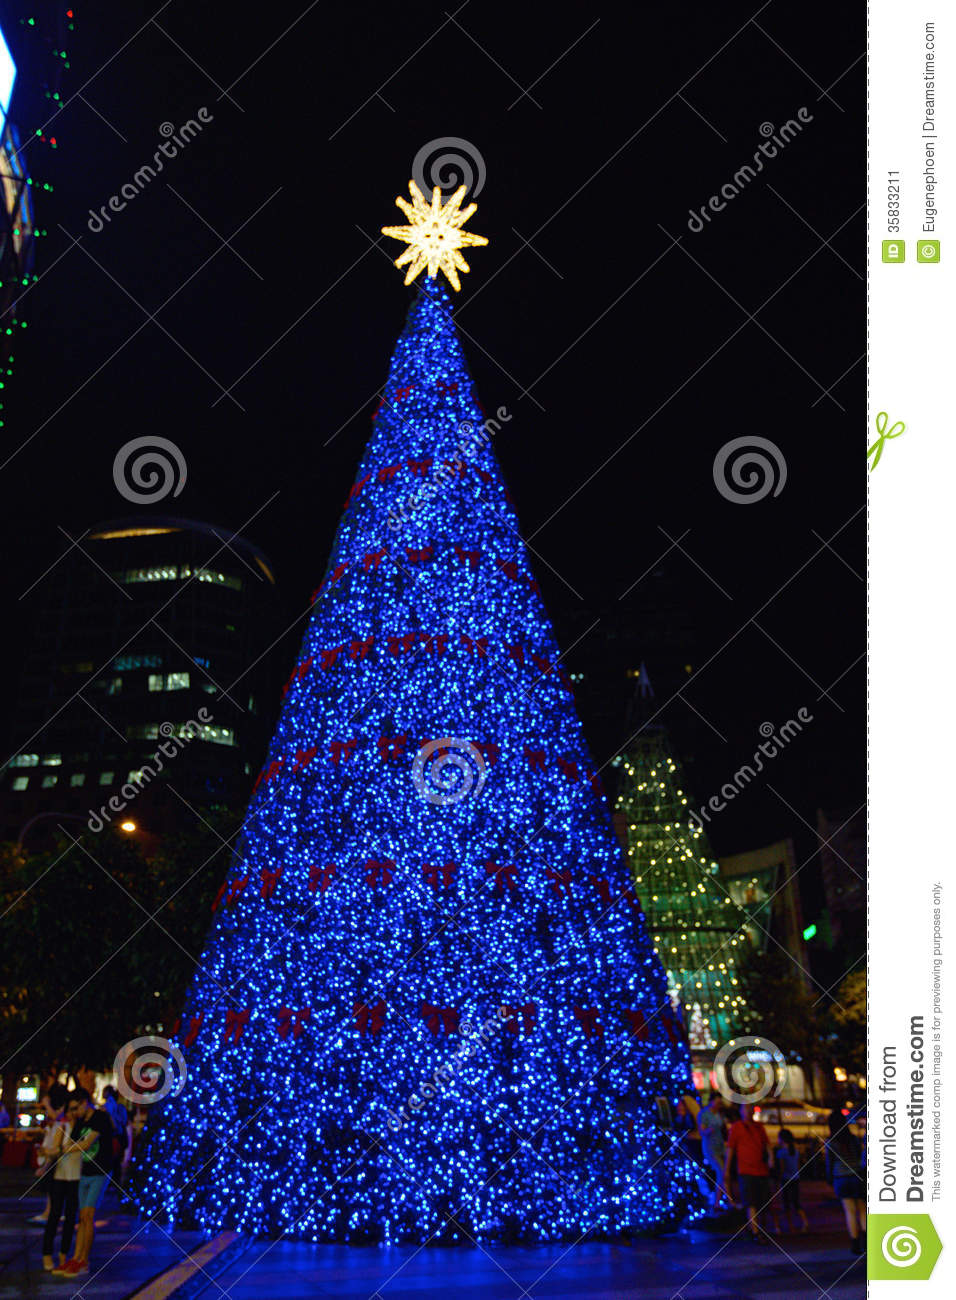 blue christmas tree - Christmas Tree With Blue Lights